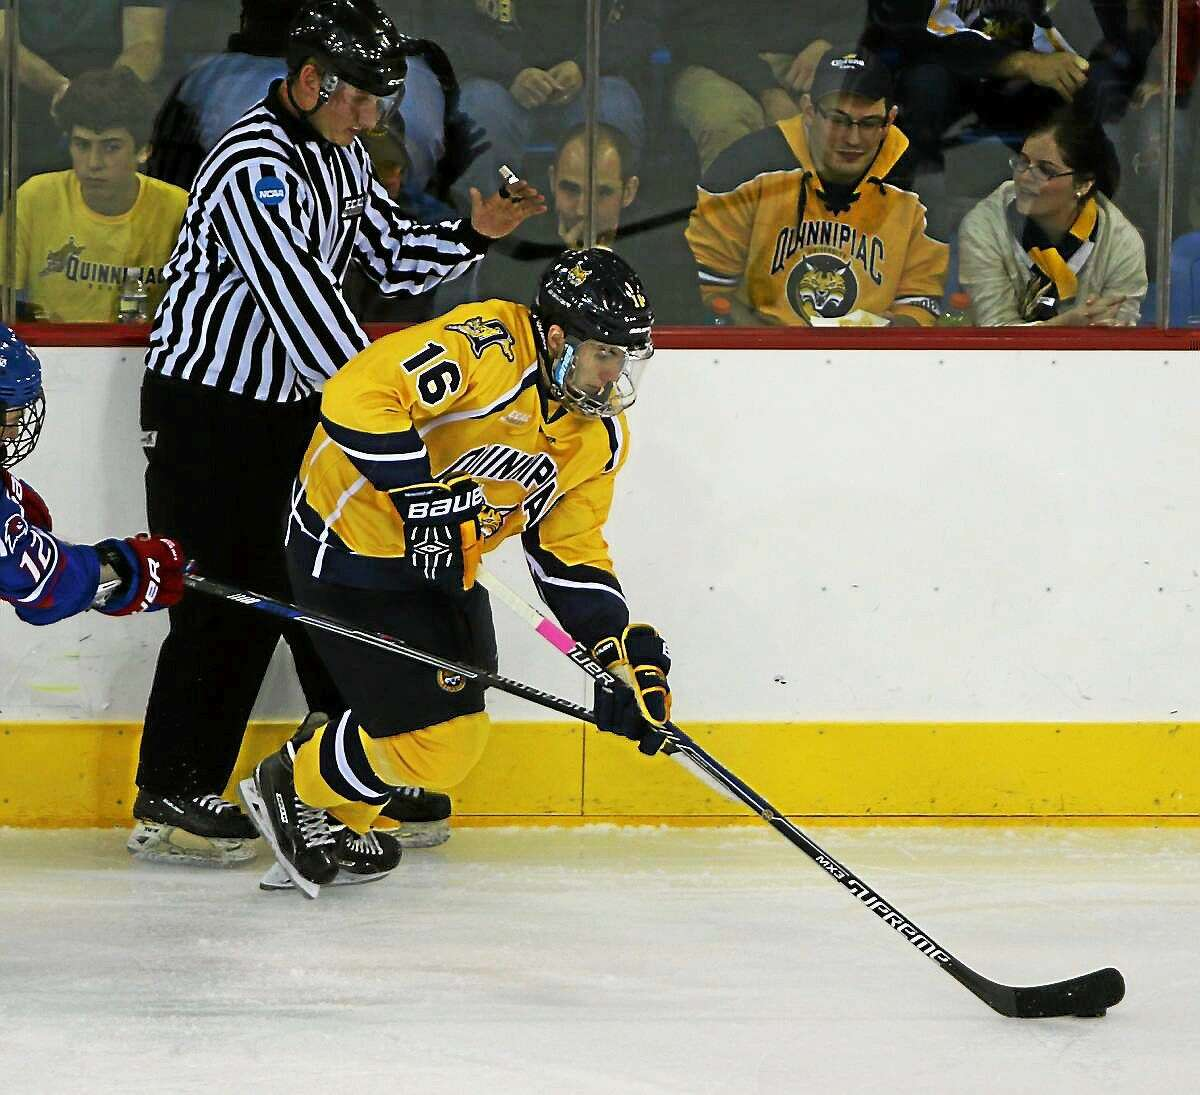 Quinnipiac freshman Landon Smith will be expected to pack a scoring punch for the Bobcats immediately.